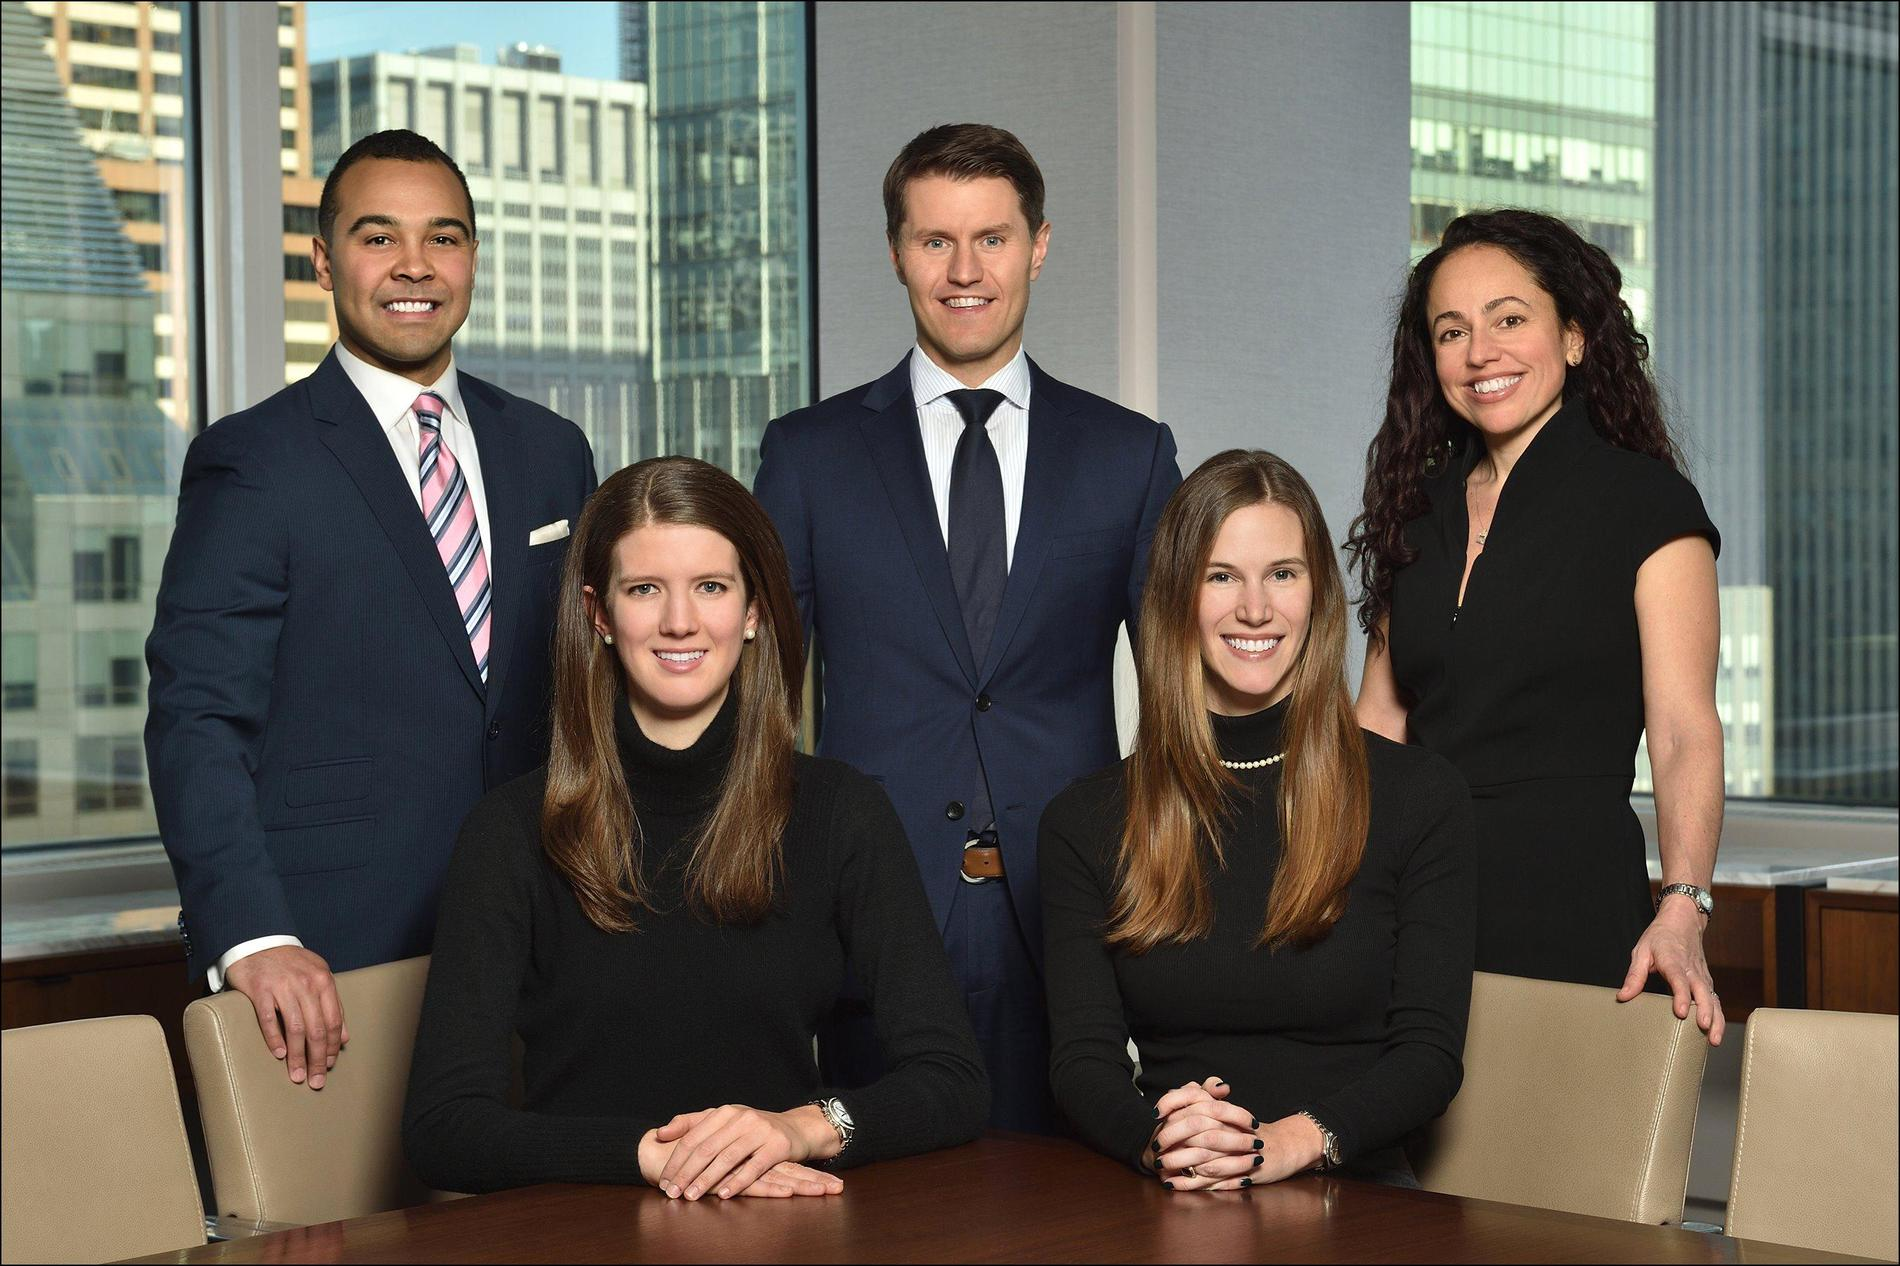 The CMF Group | New York, NY | Morgan Stanley Private Wealth